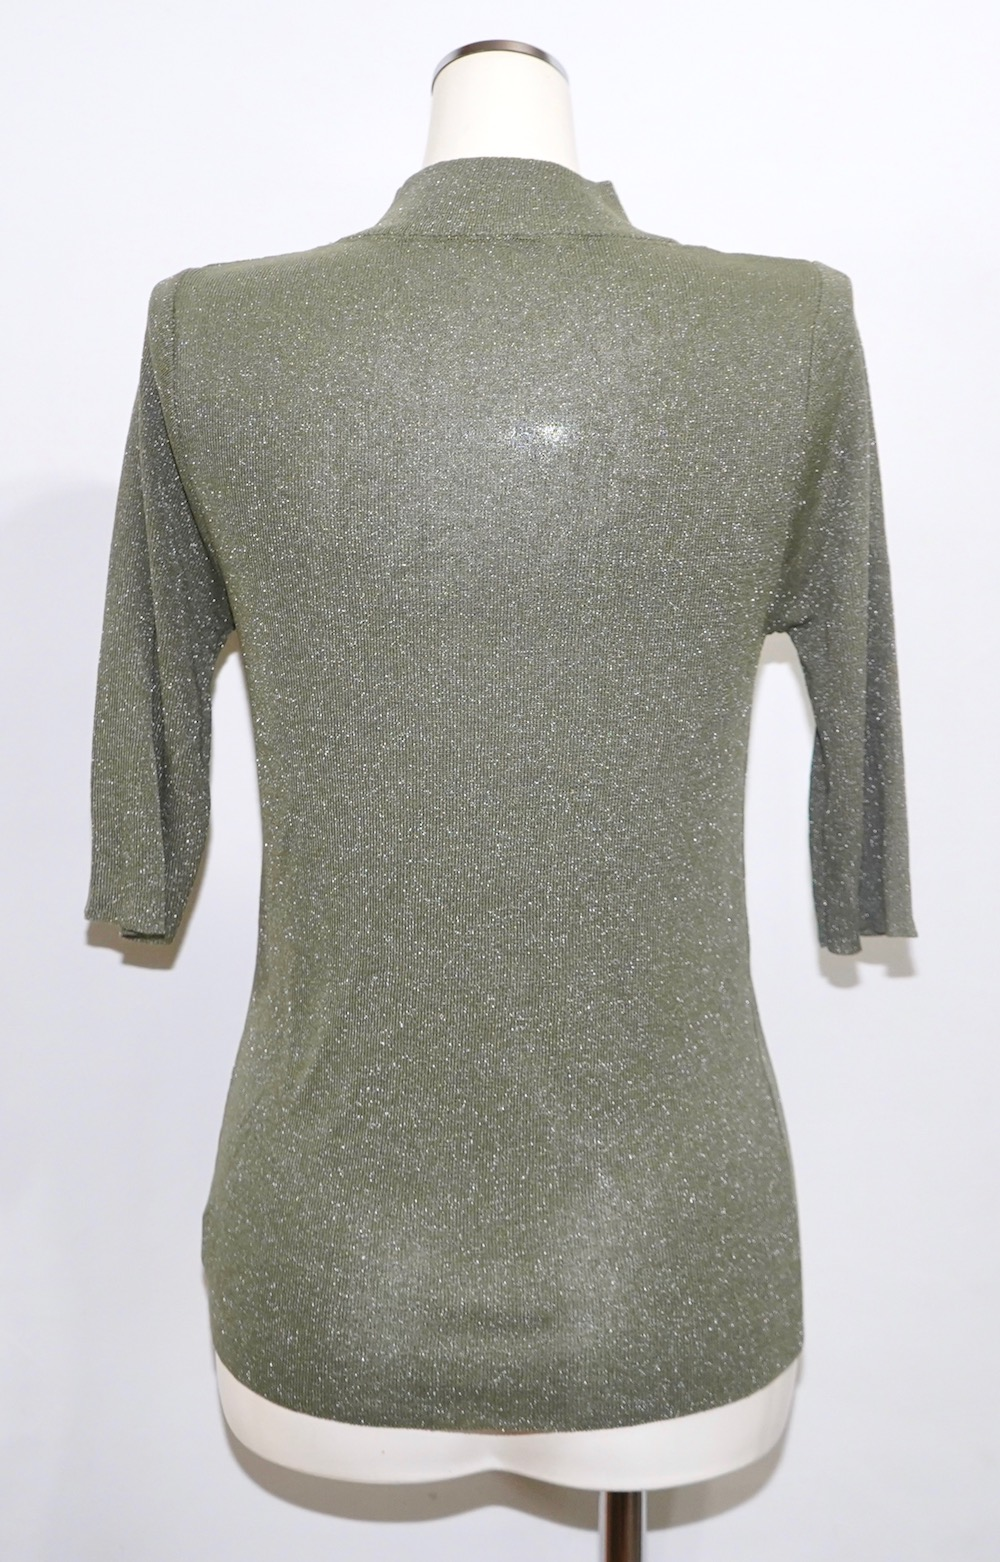 Decolletage Cut Lame S/S Knit Tops (light green)